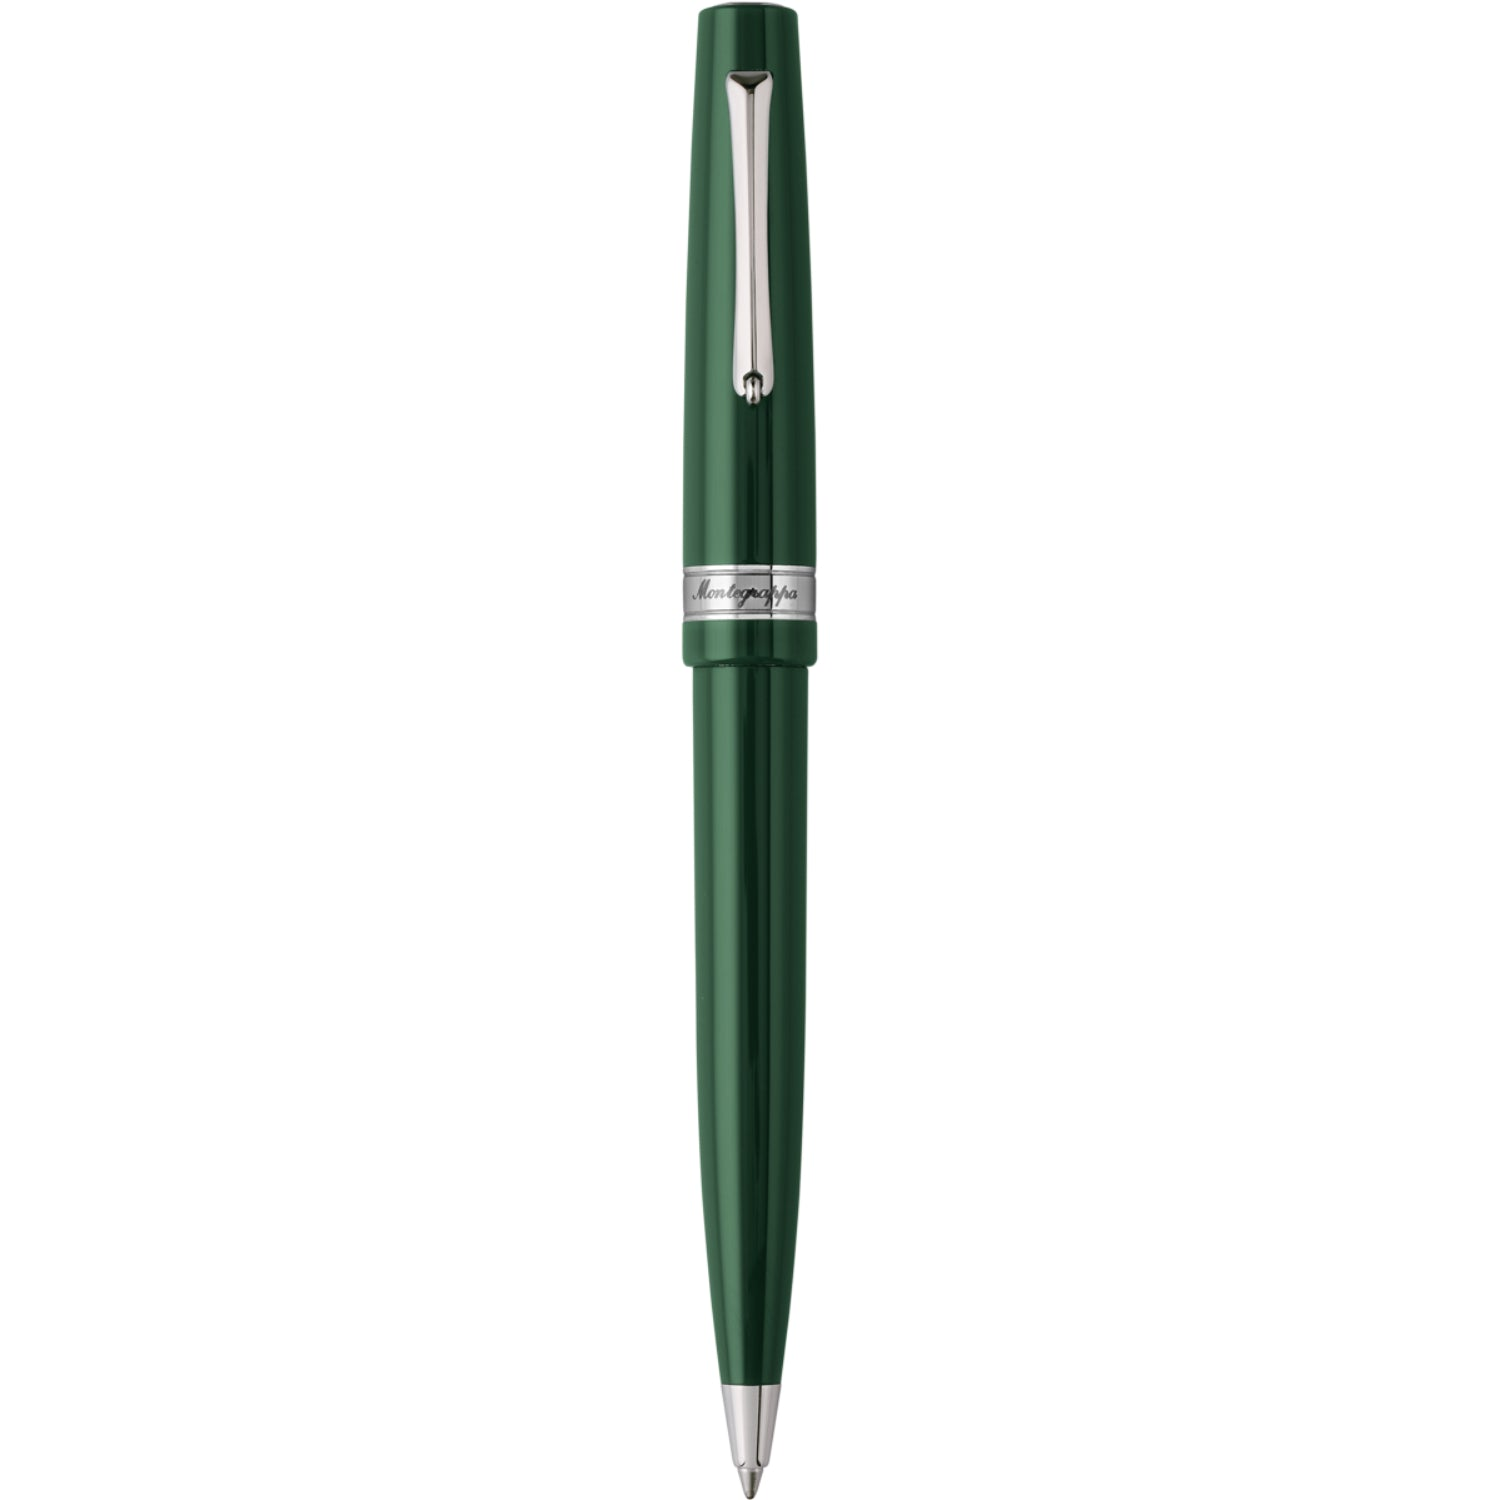 Armonia Ballpoint Pen, British Green